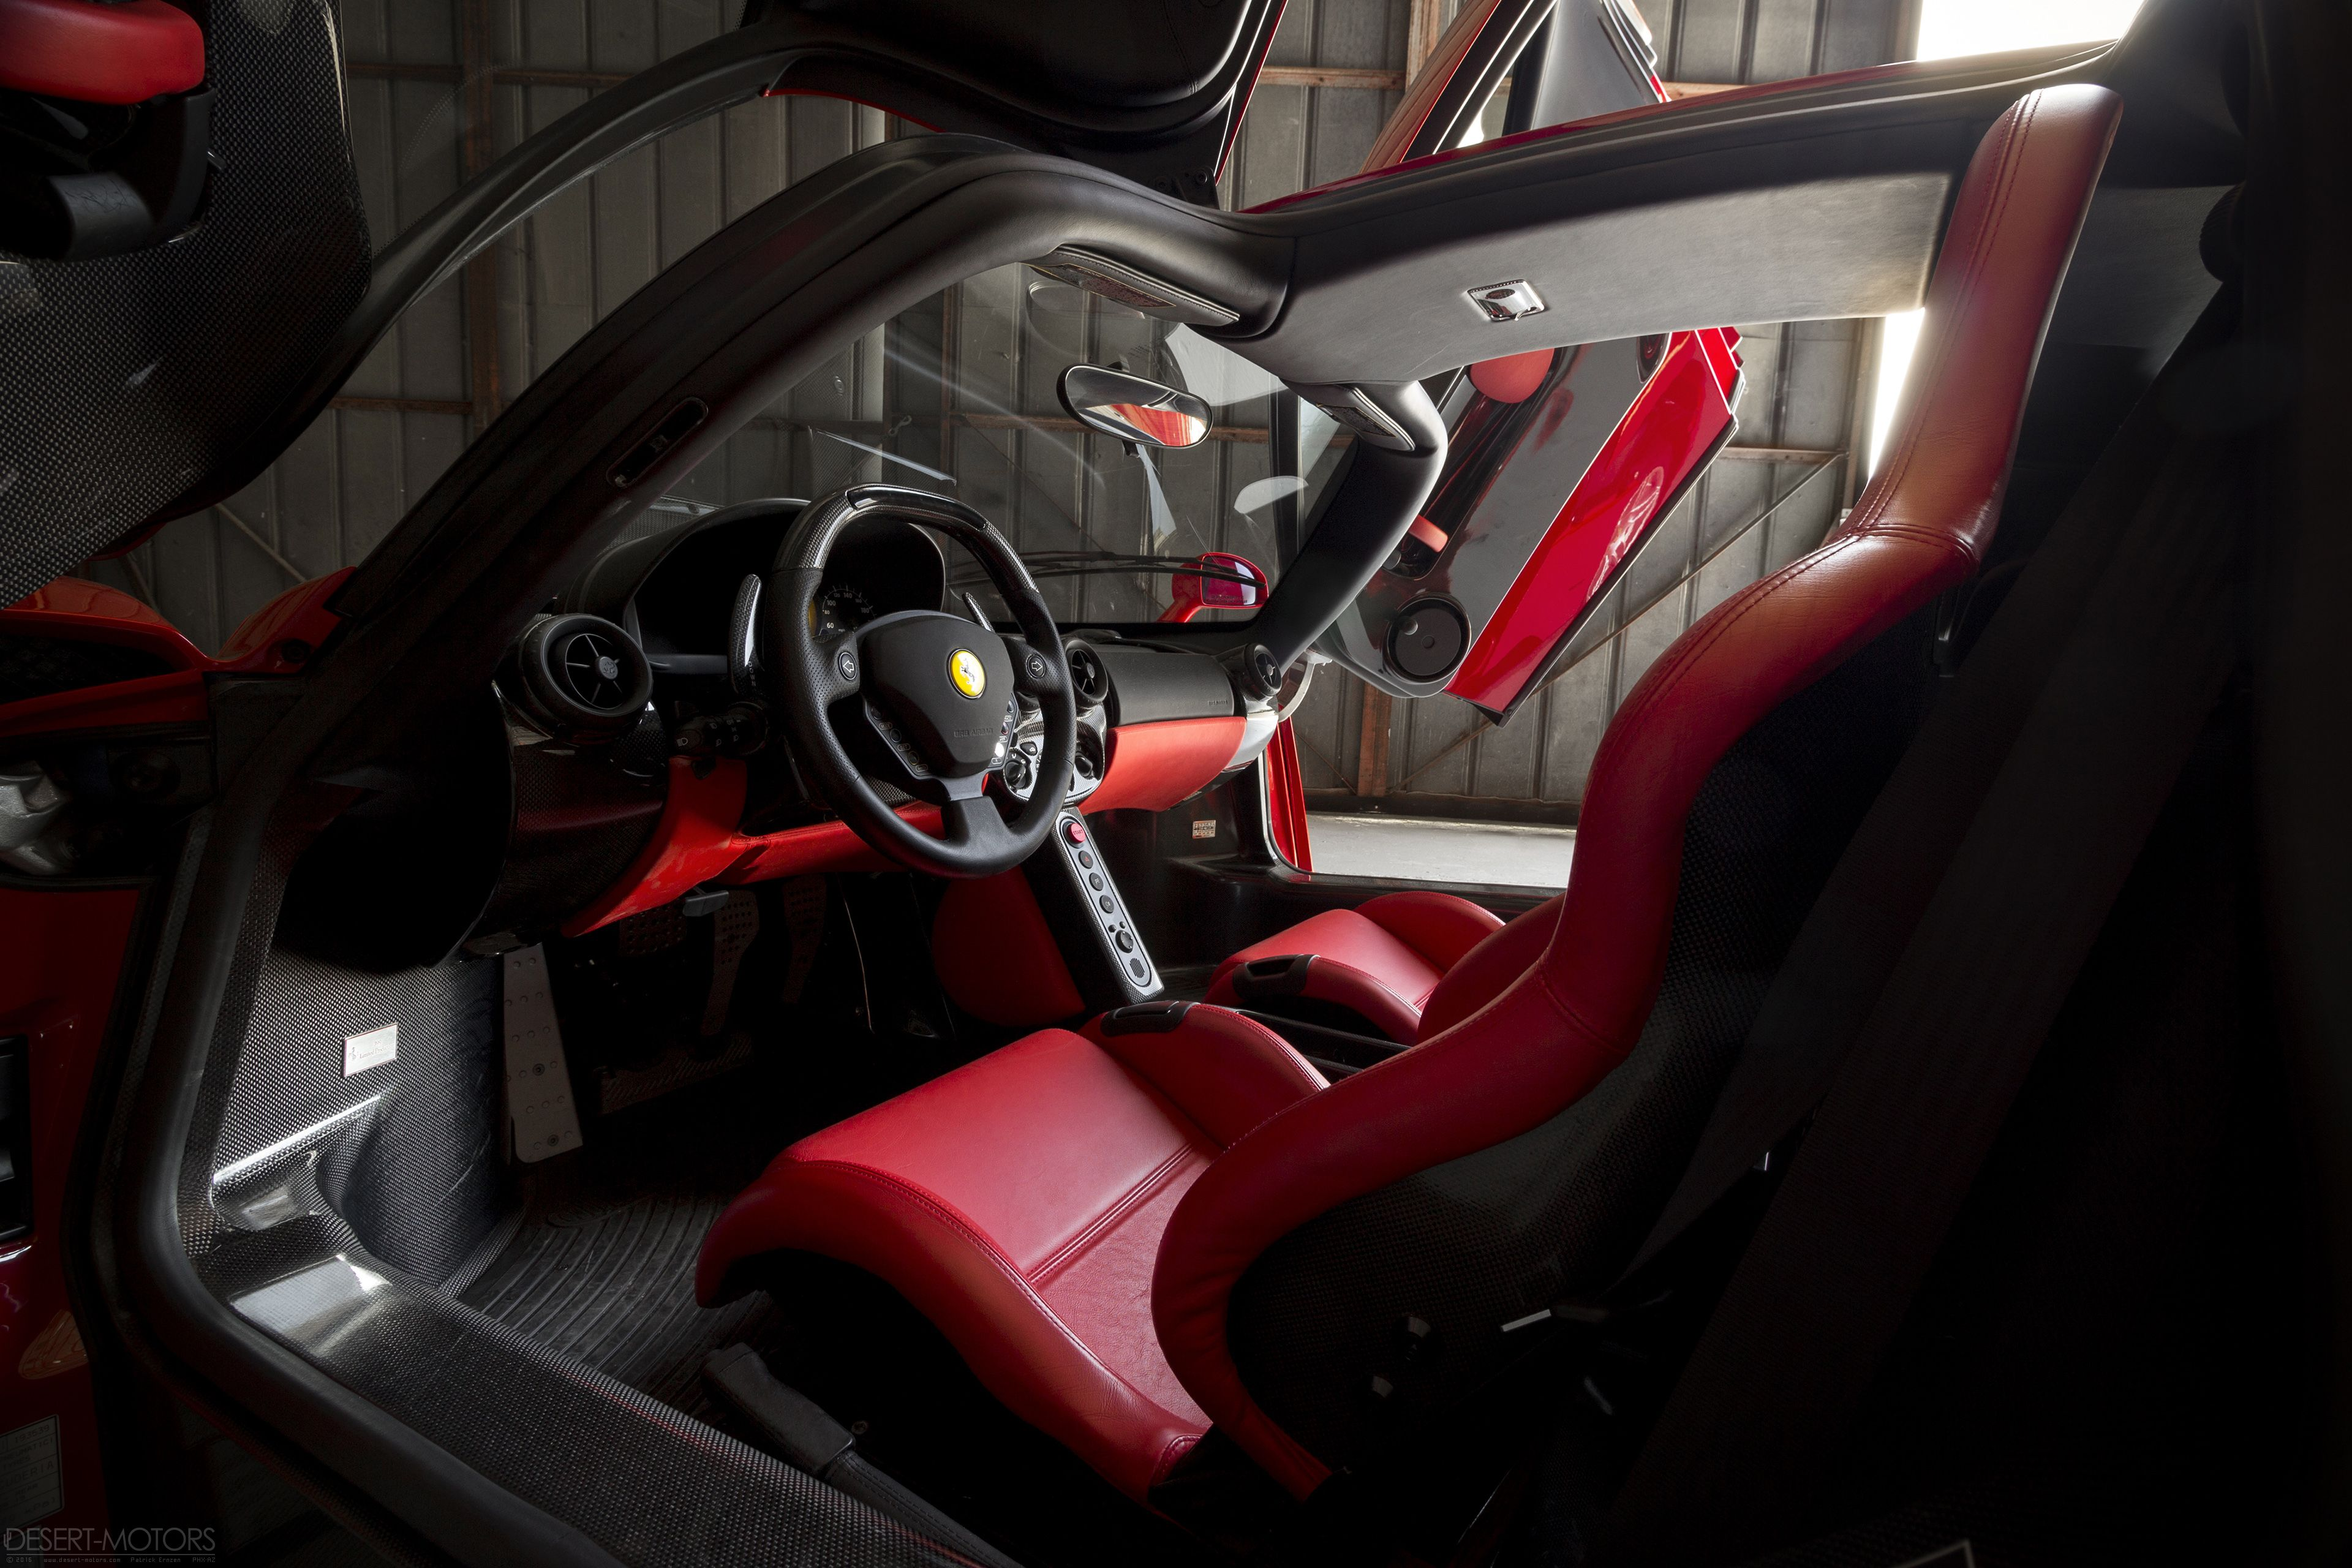 Ferrari Enzo: One of the best interior of all time IMO. [OS] [OC] [3840x2560] - Click the PIN to see more!